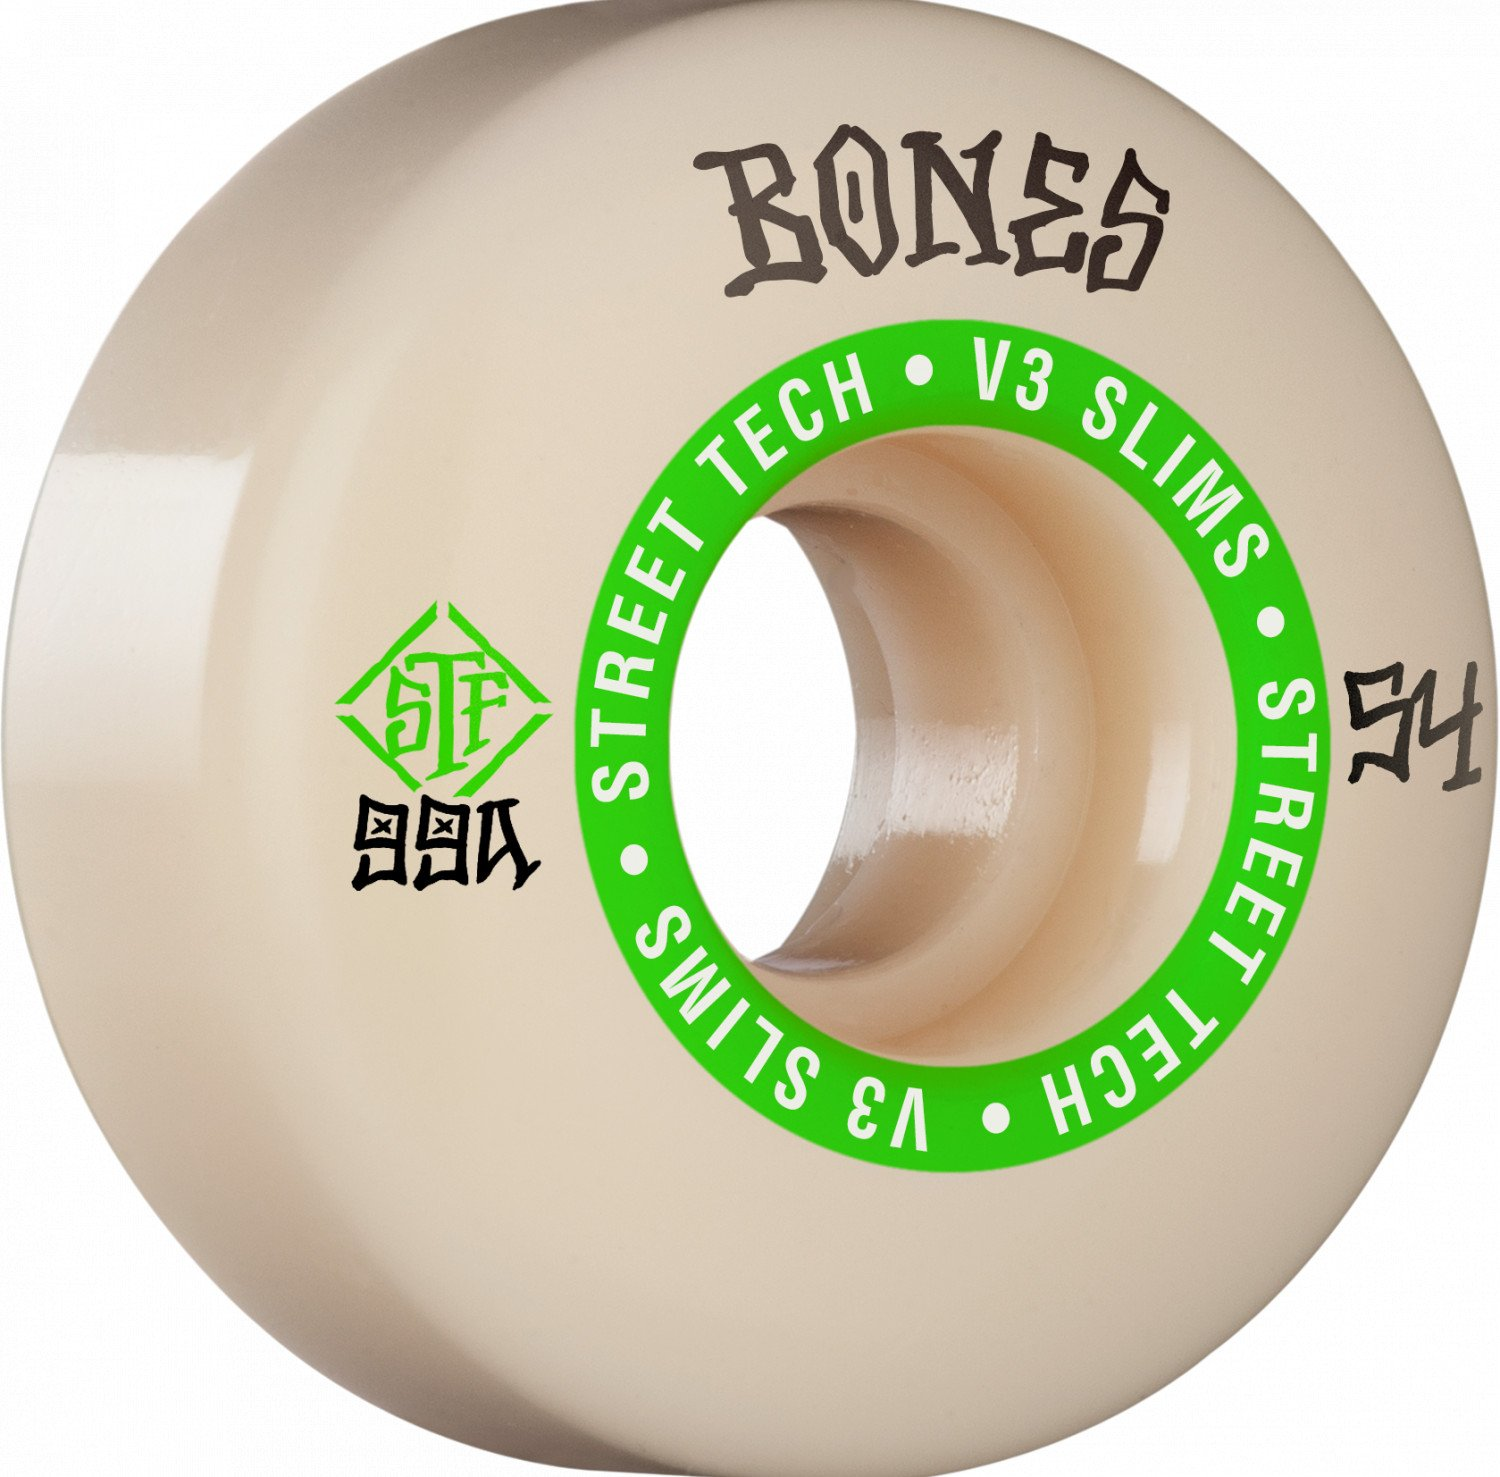 Bones STF V3 Ninety-Nine 54mm Wheel Set